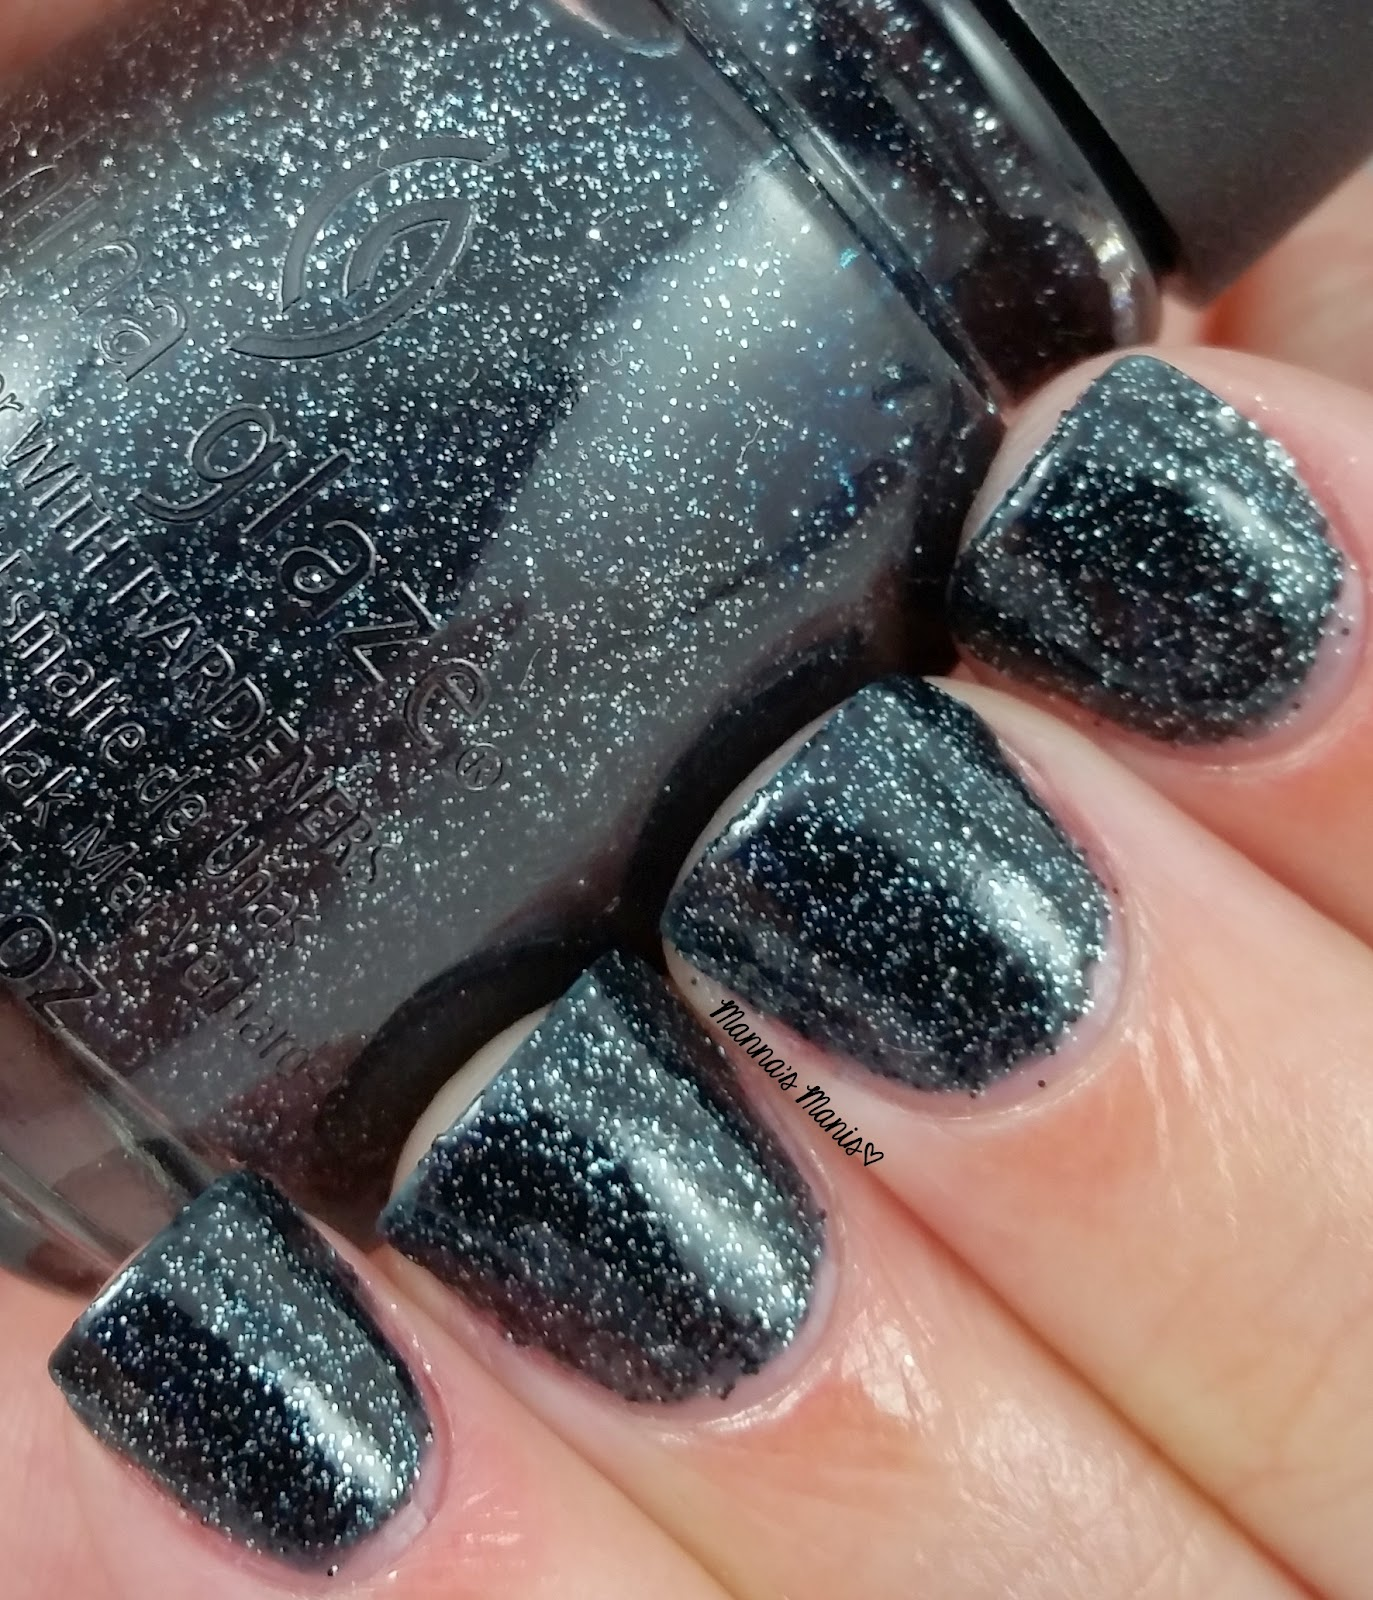 china glaze meet me under the stars, a silver and black glitter nail polish